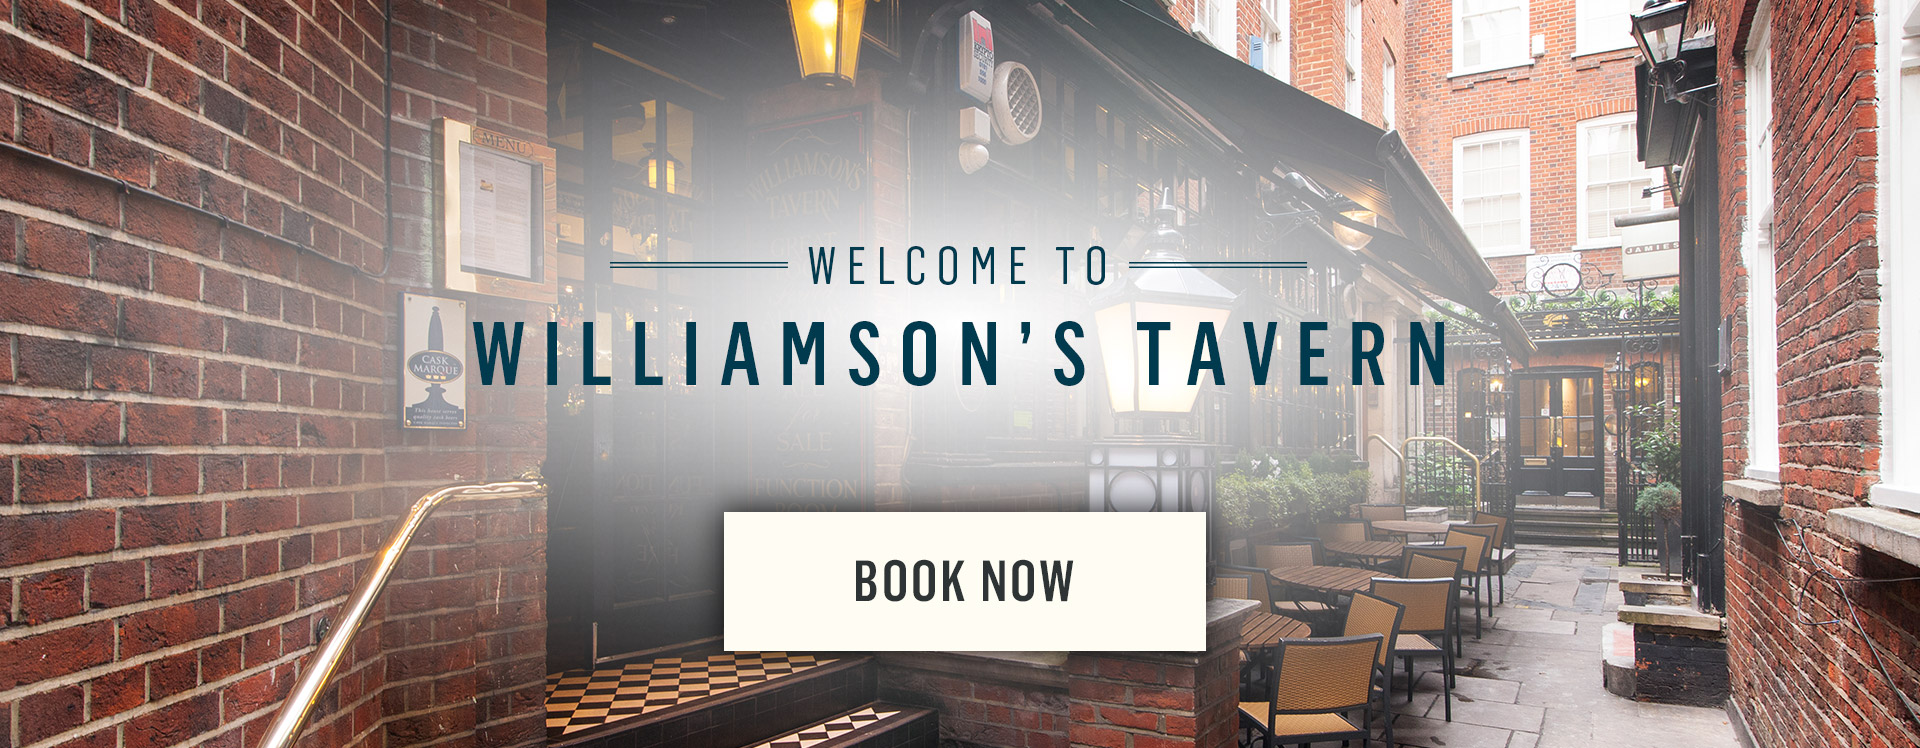 Welcome to Williamson's Tavern - Book Now